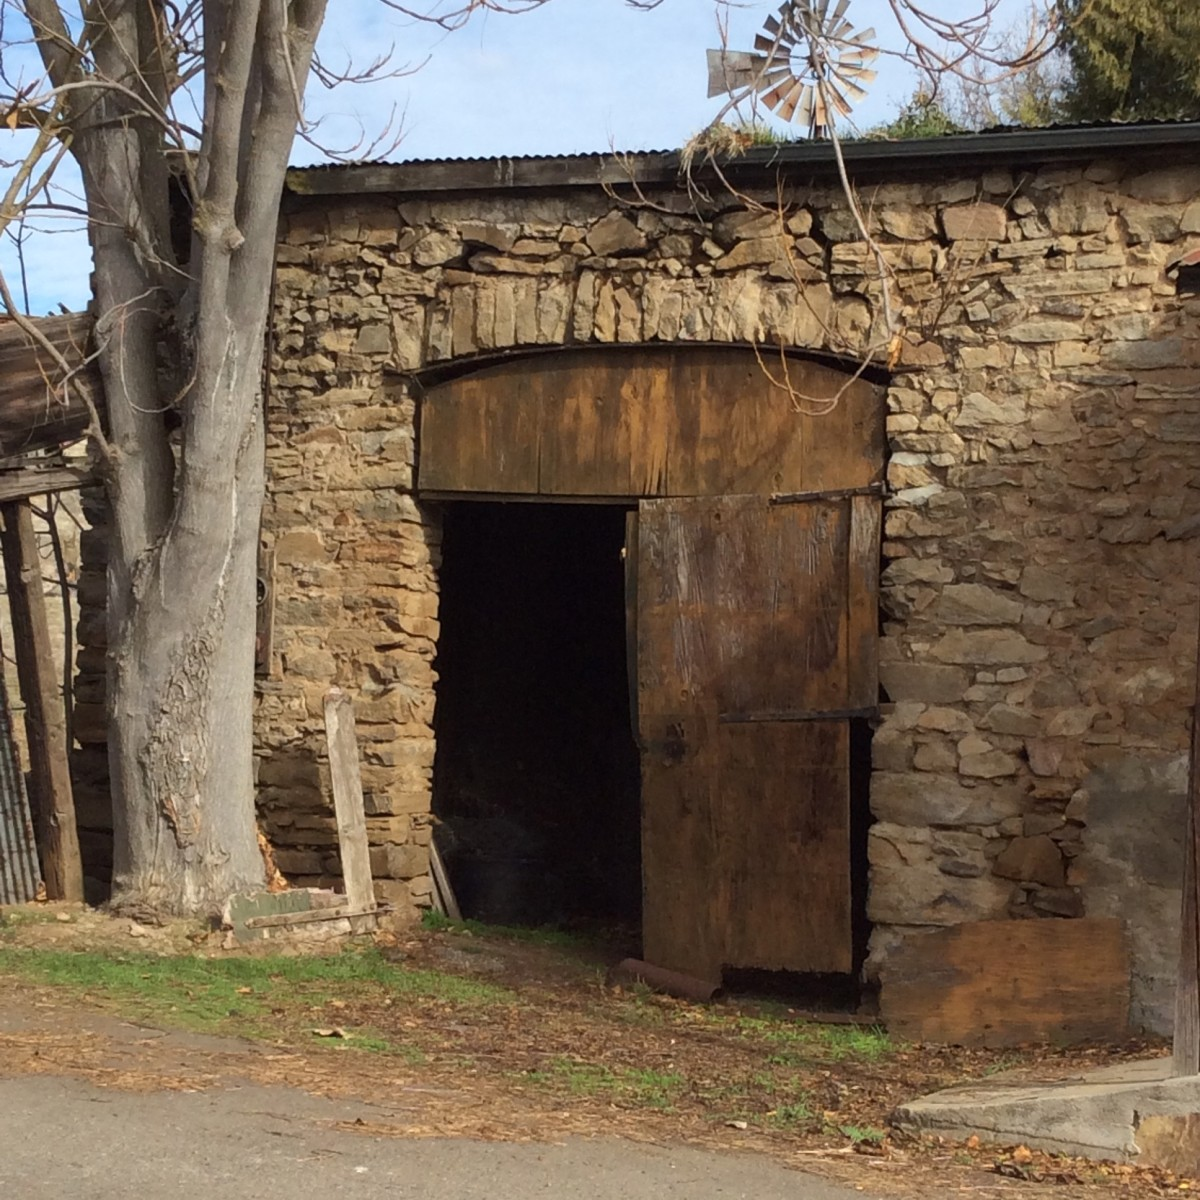 Doorway to the past. Native stone and a lot of hard work built structures that still stand strong.